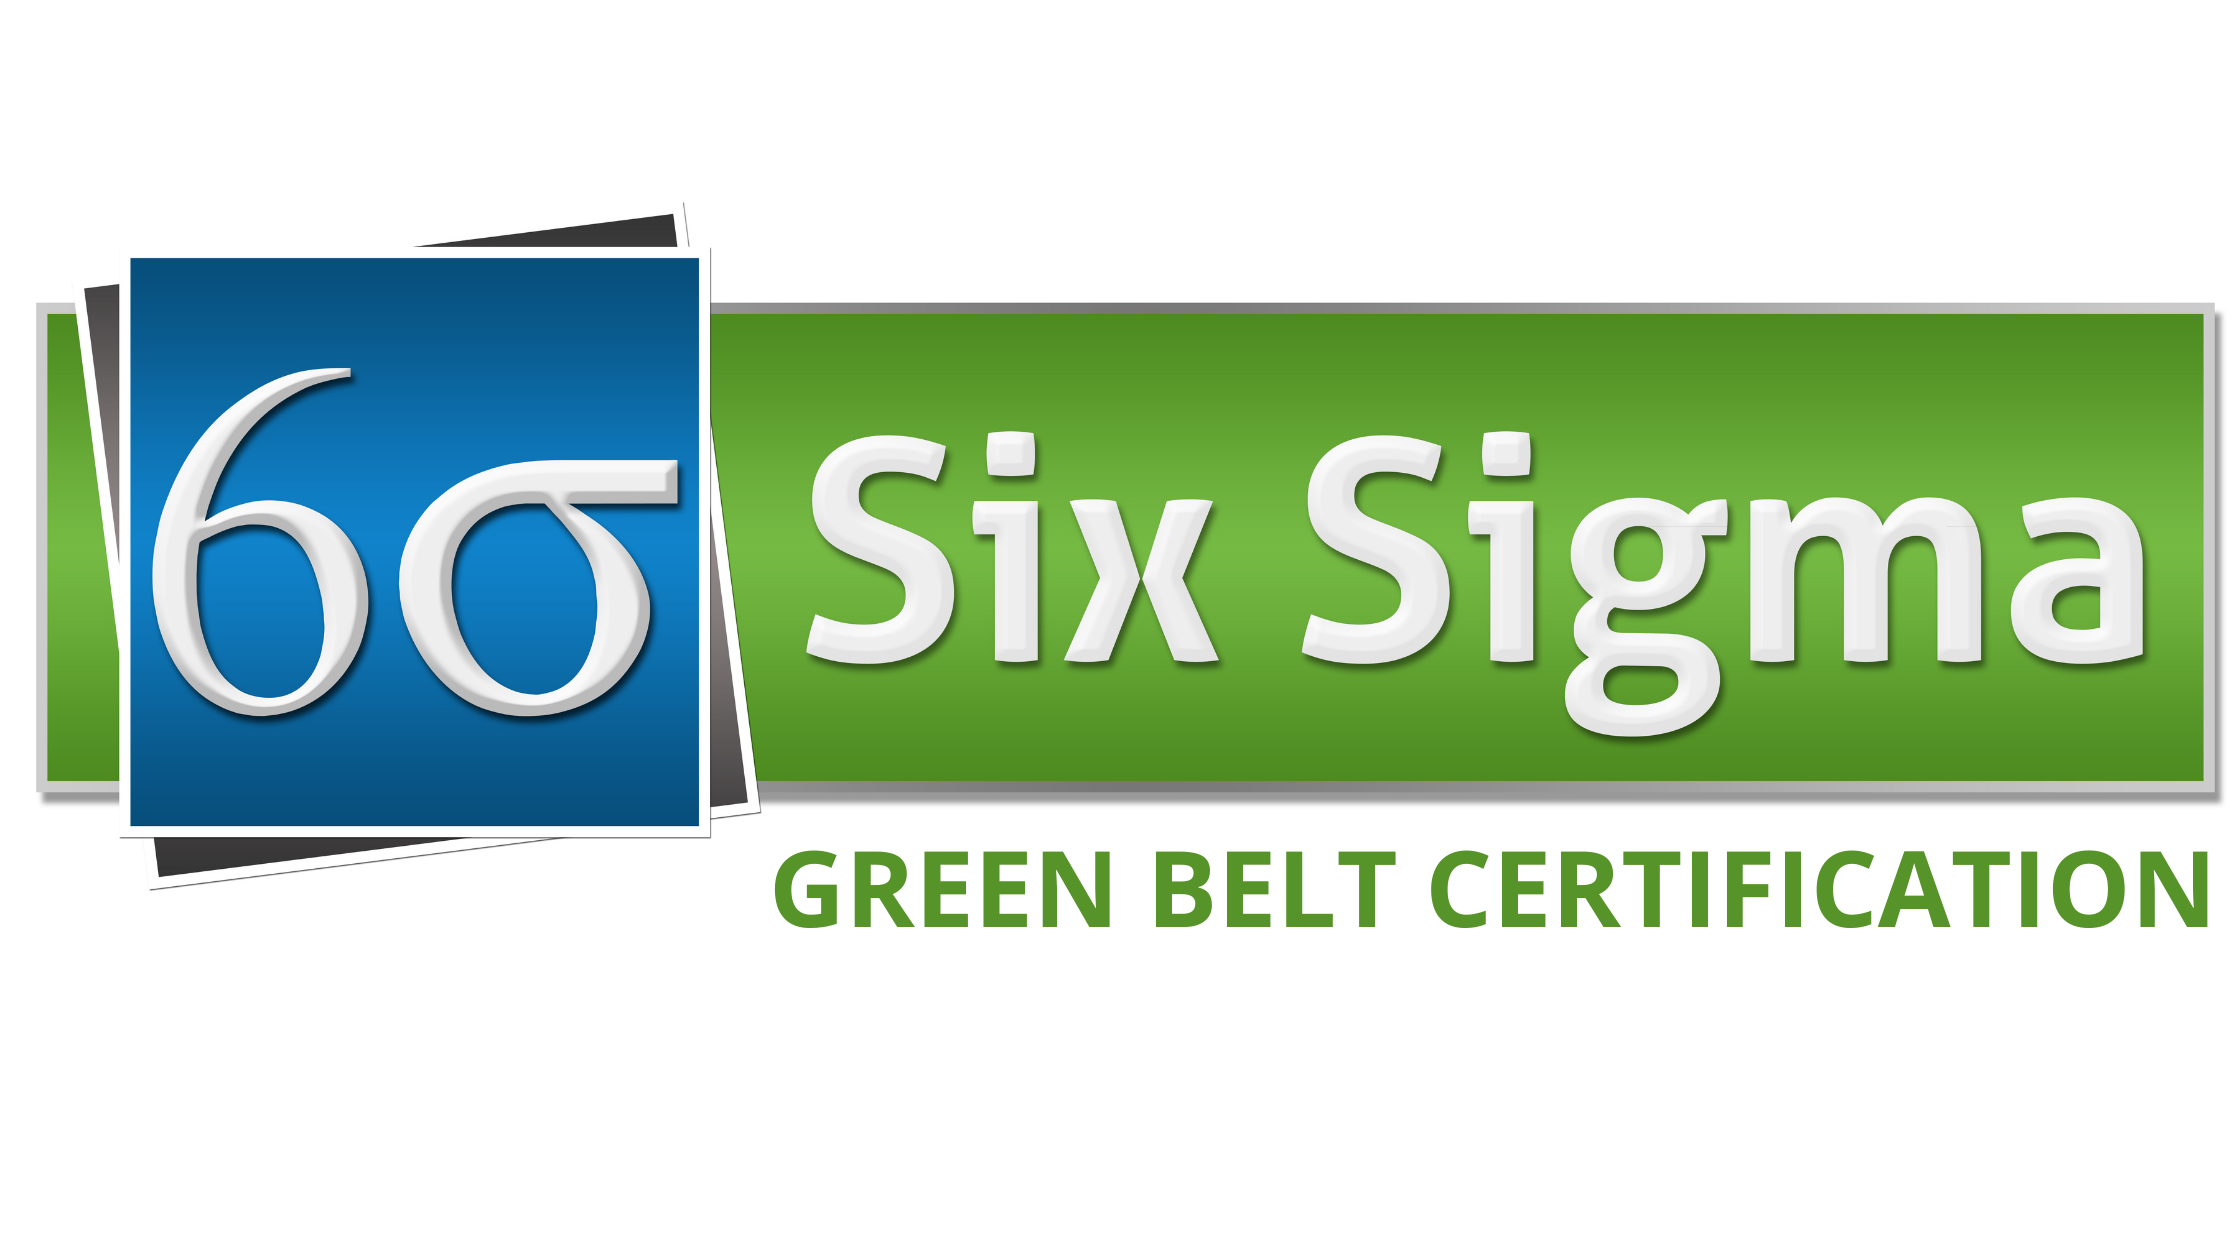 How long does it take to get a Six Sigma Green Belt